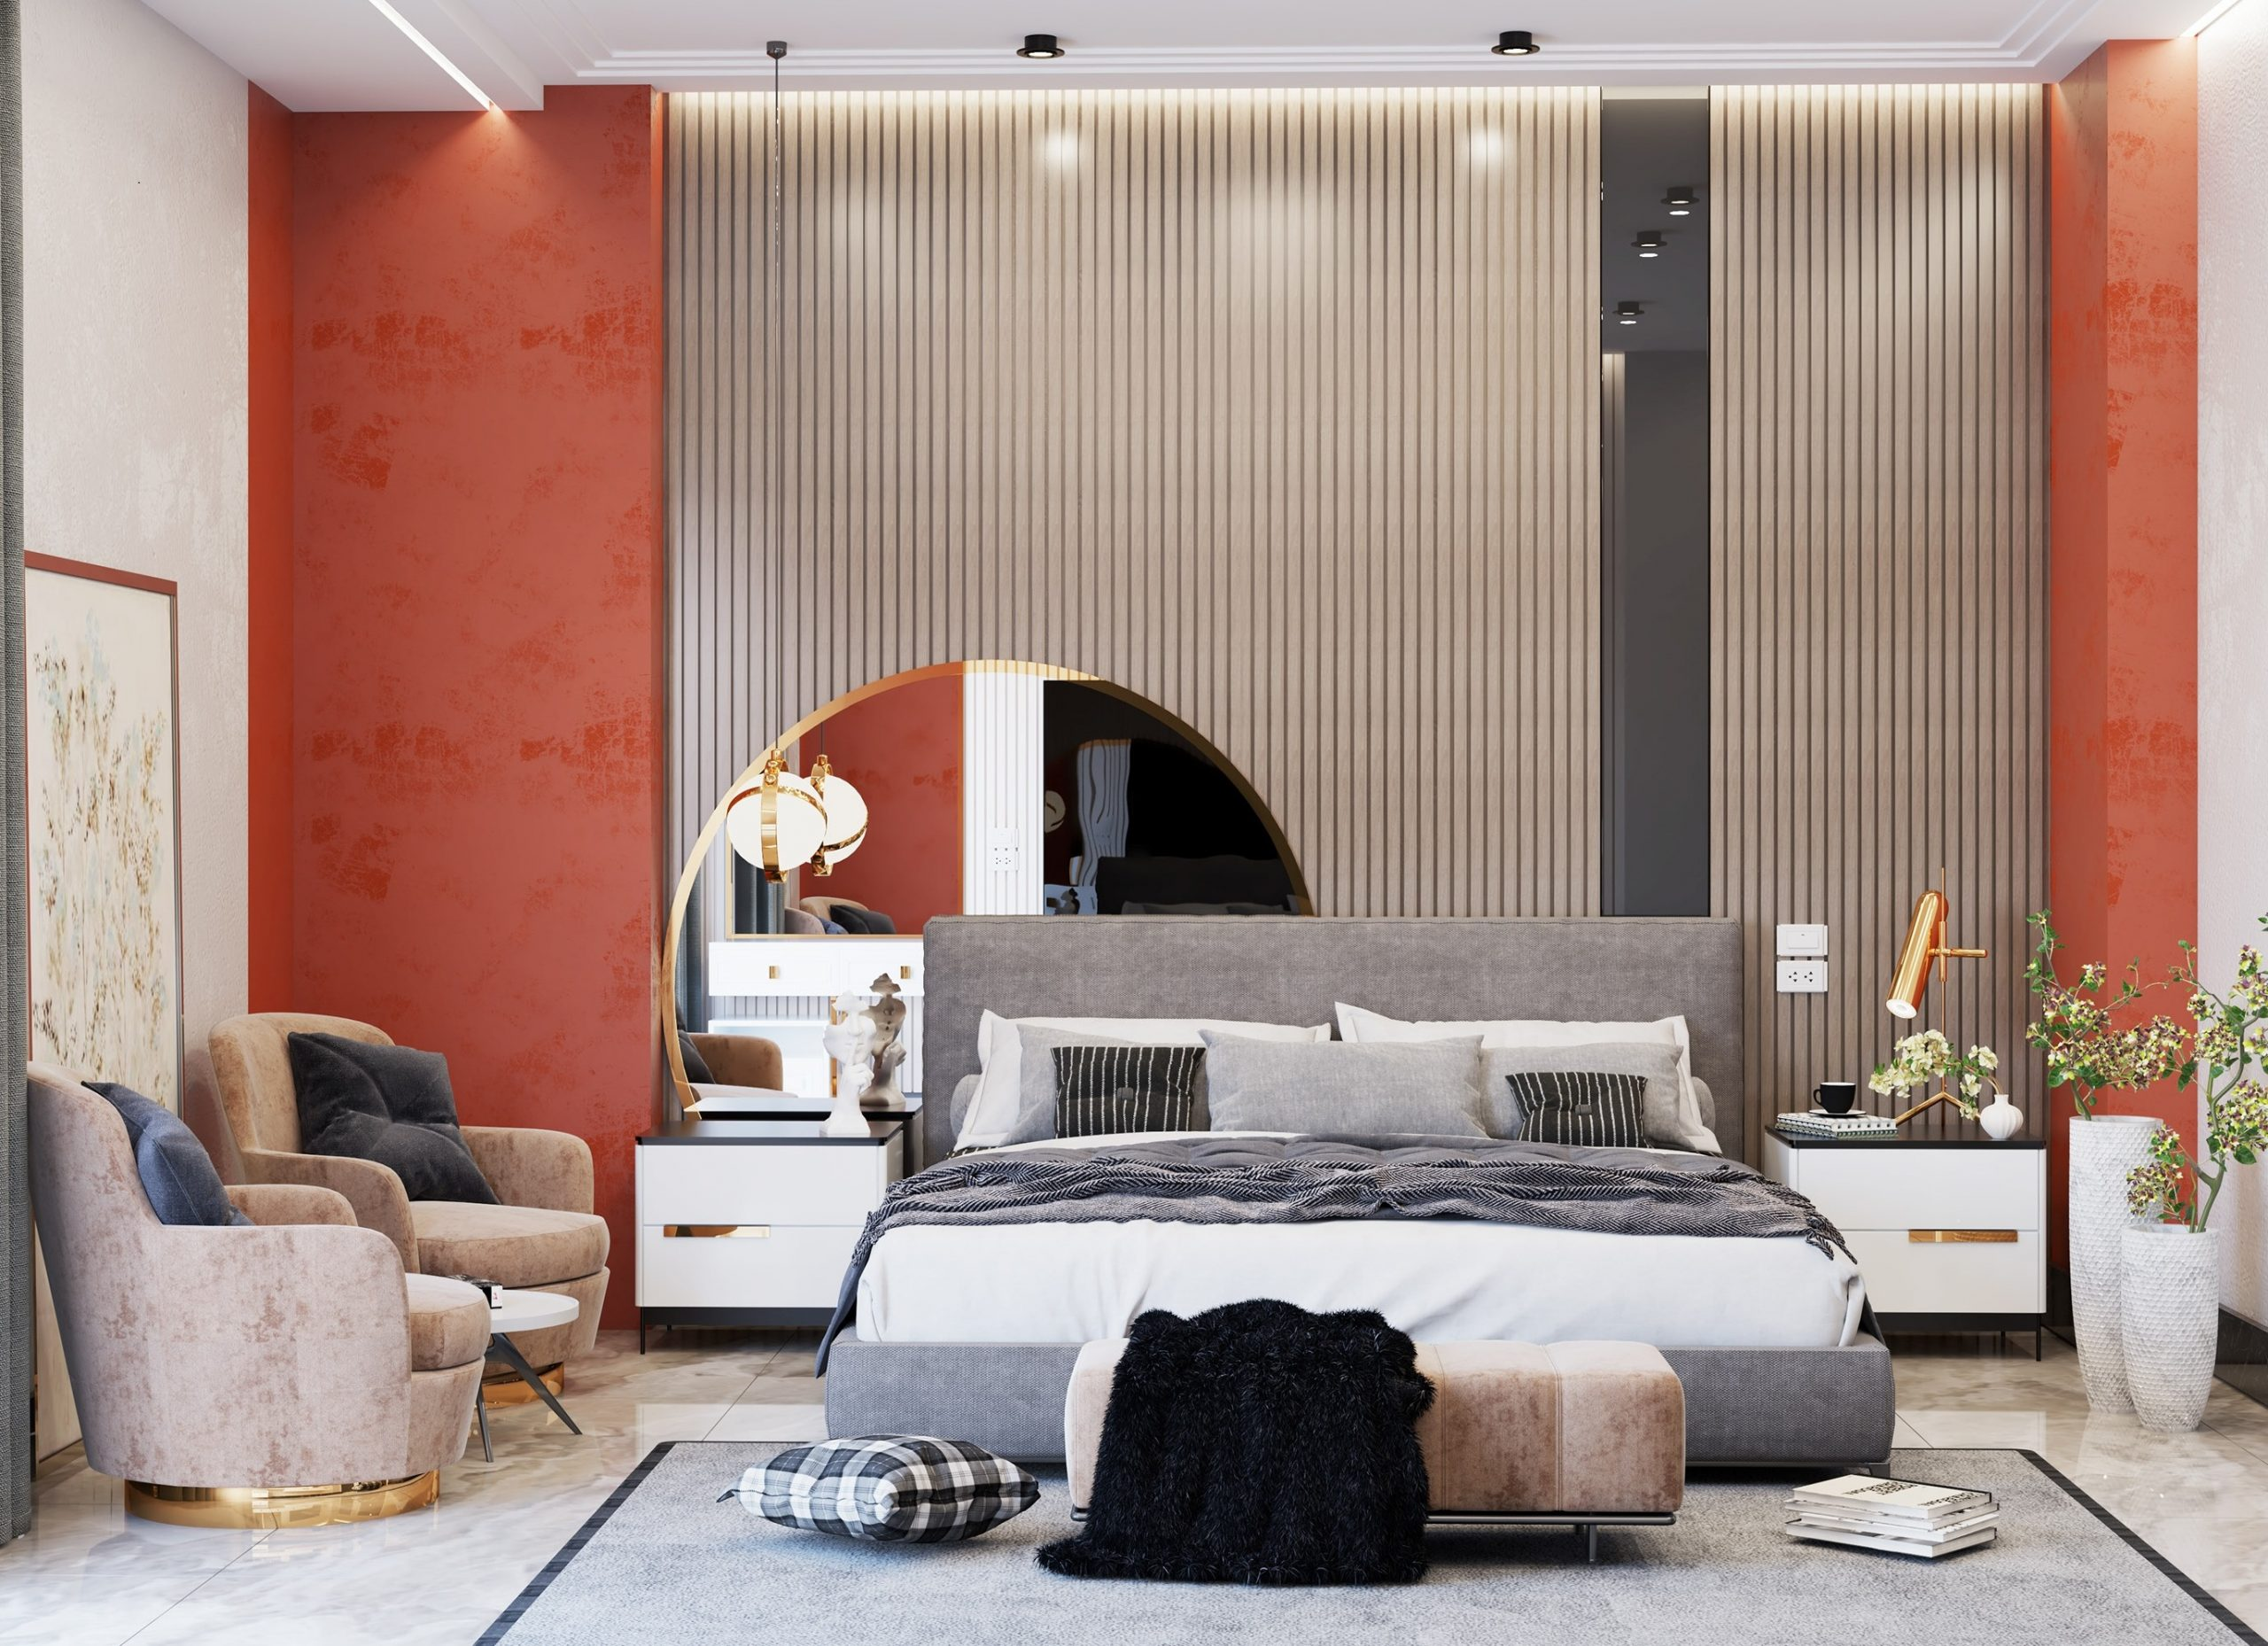 Rust Orange and Blue Combination To Add Some Color To Your Bedroom